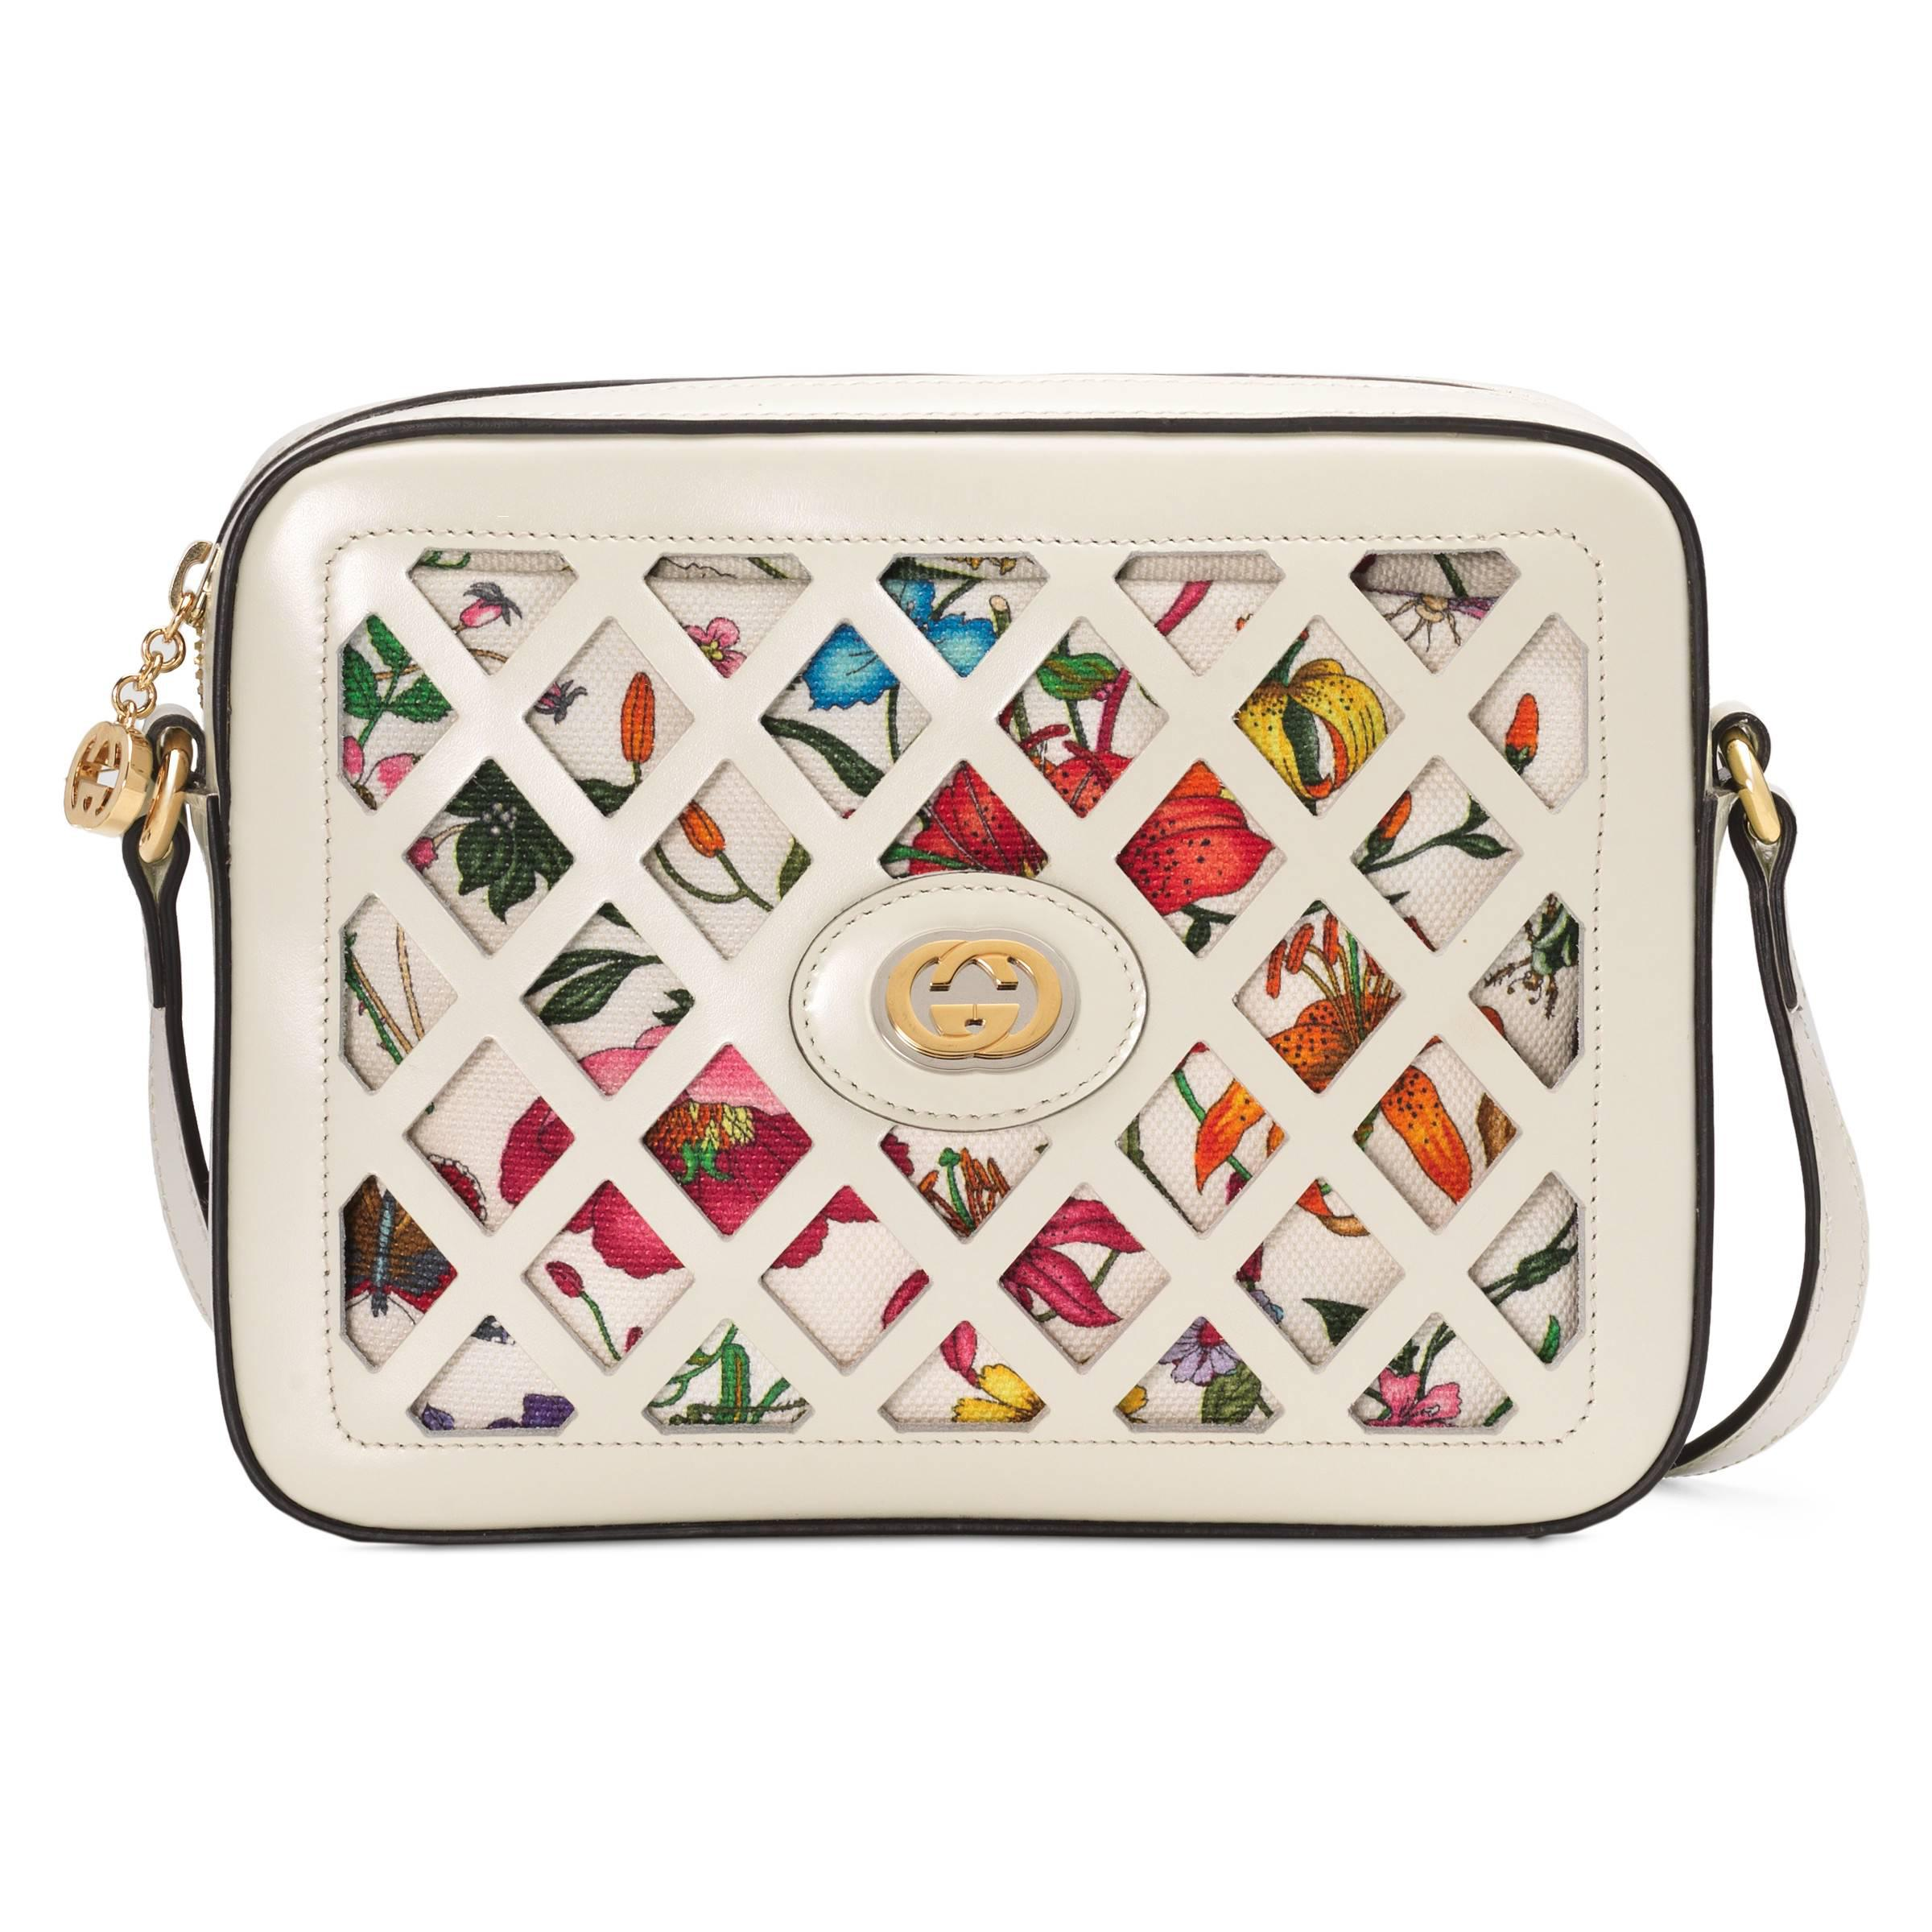 0178a30b8468 Gucci Small Cutout Leather Shoulder Bag in White - Lyst